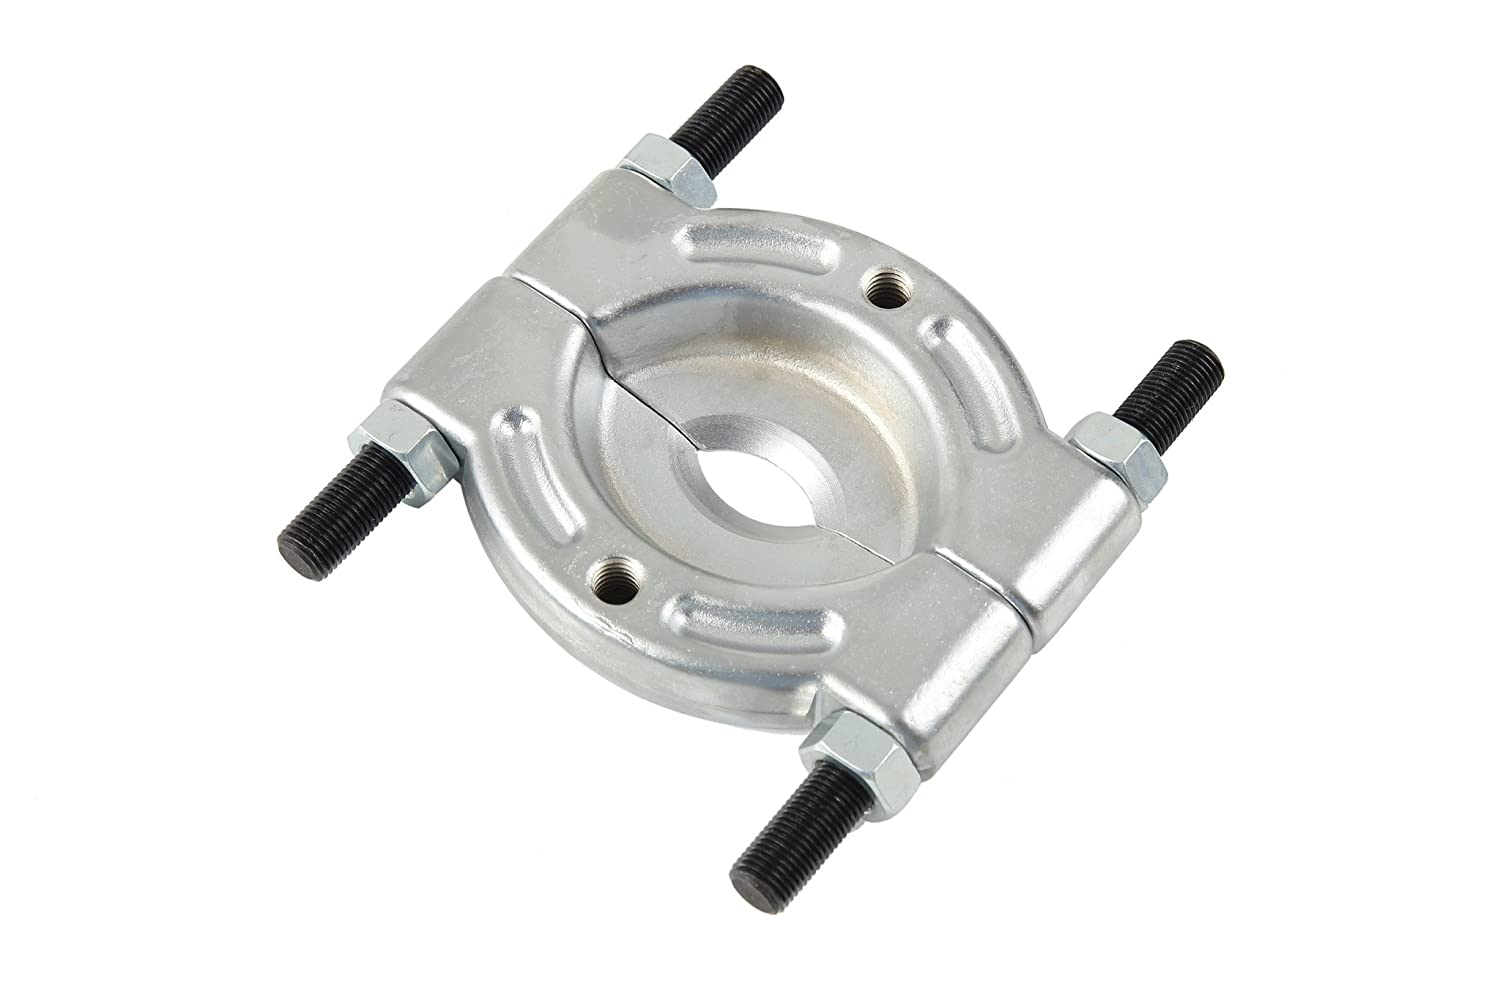 Large Bearing Splitter Shankly Bearing Separator 75-105mm or 2.95-4.13 inches